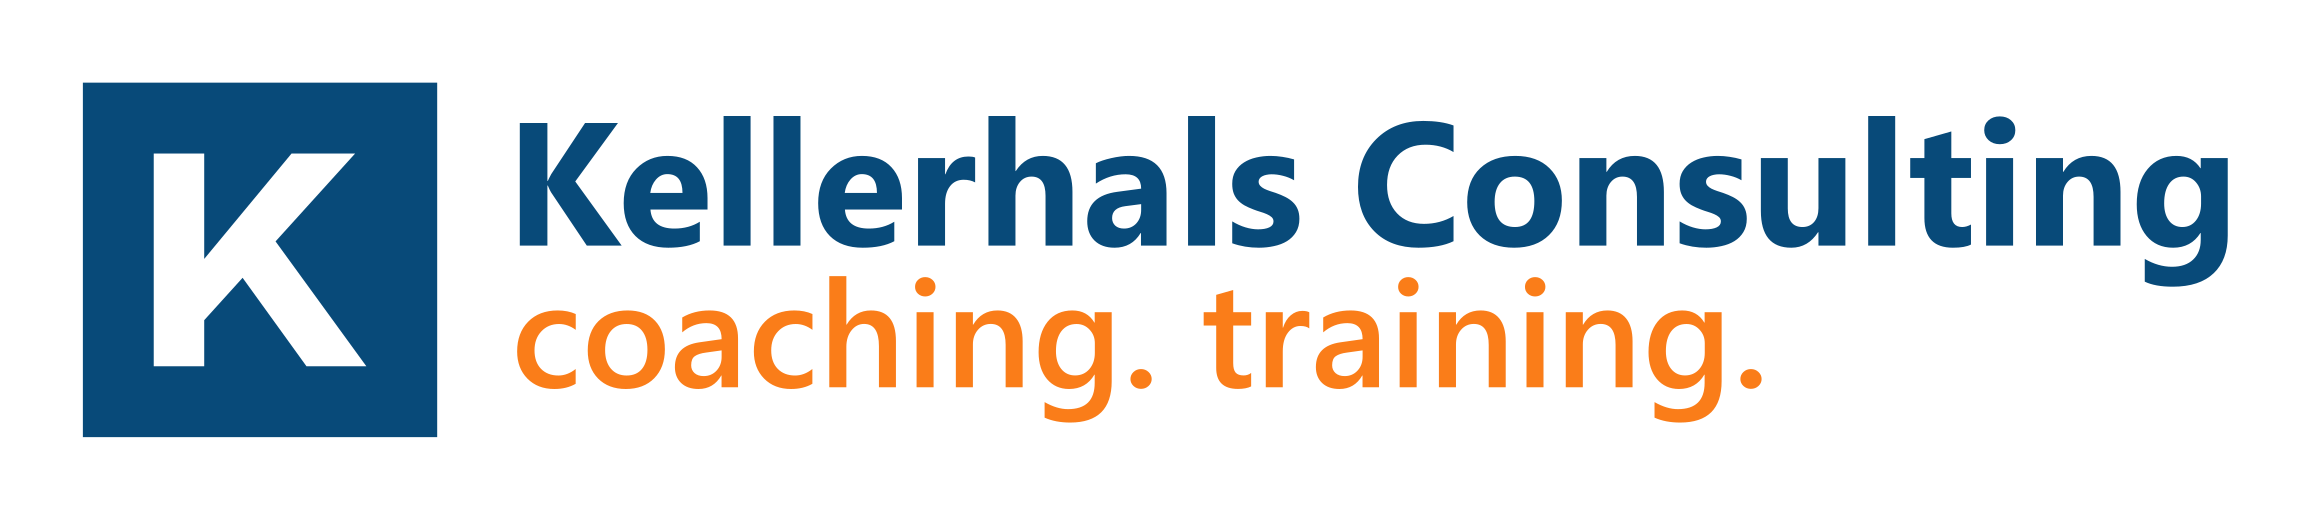 Kellerhals Consulting - Coaching - Training